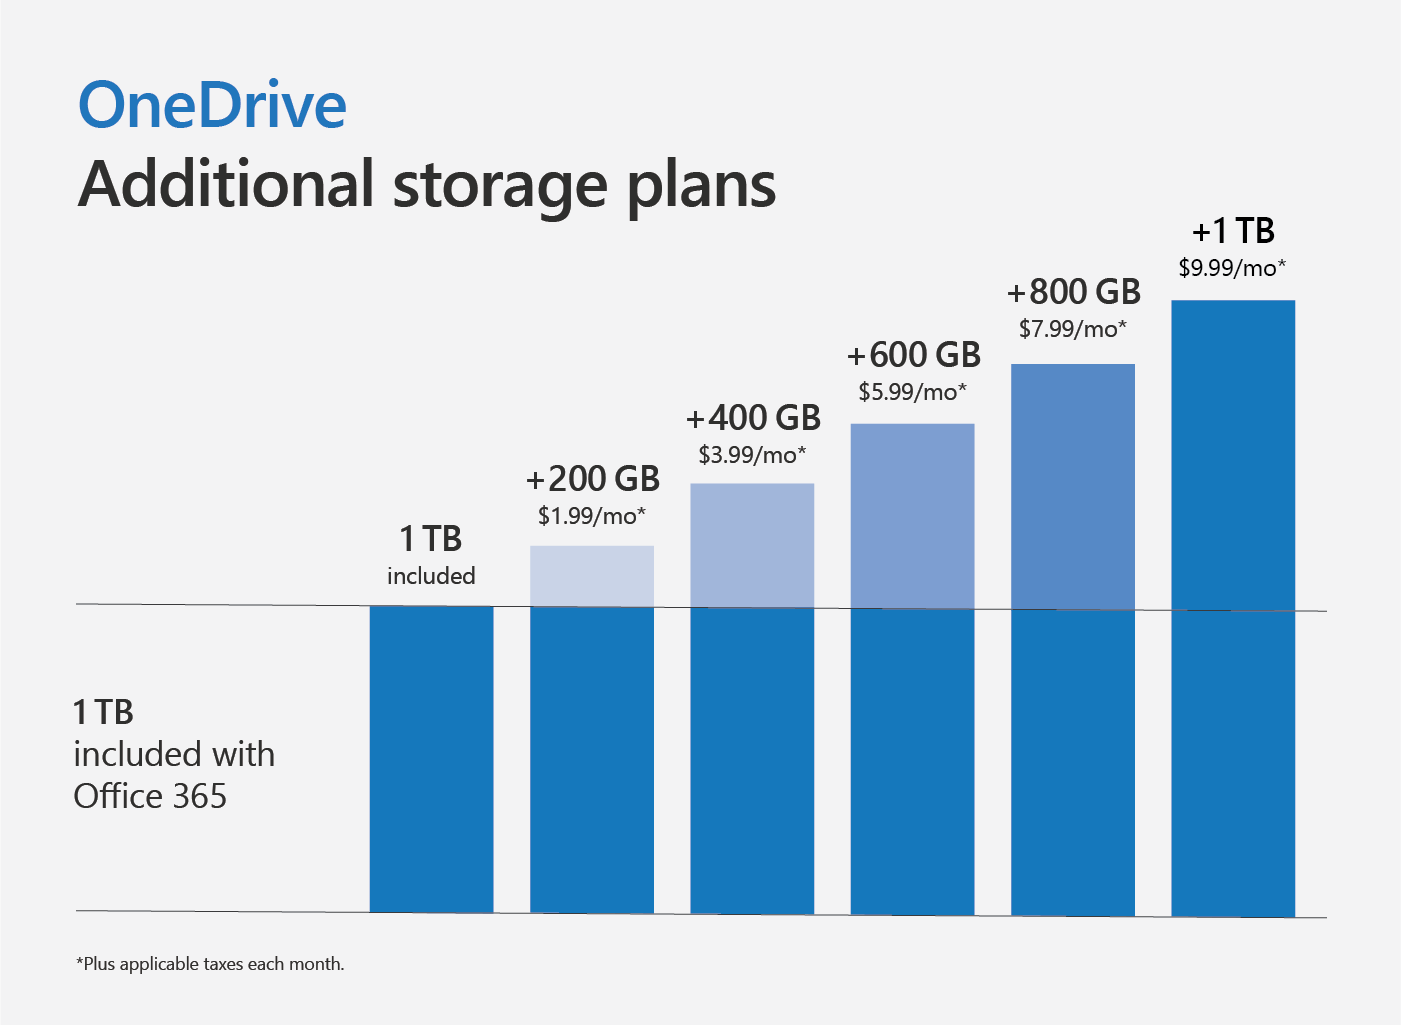 Graph showing the additional storage plans for OneDrive.